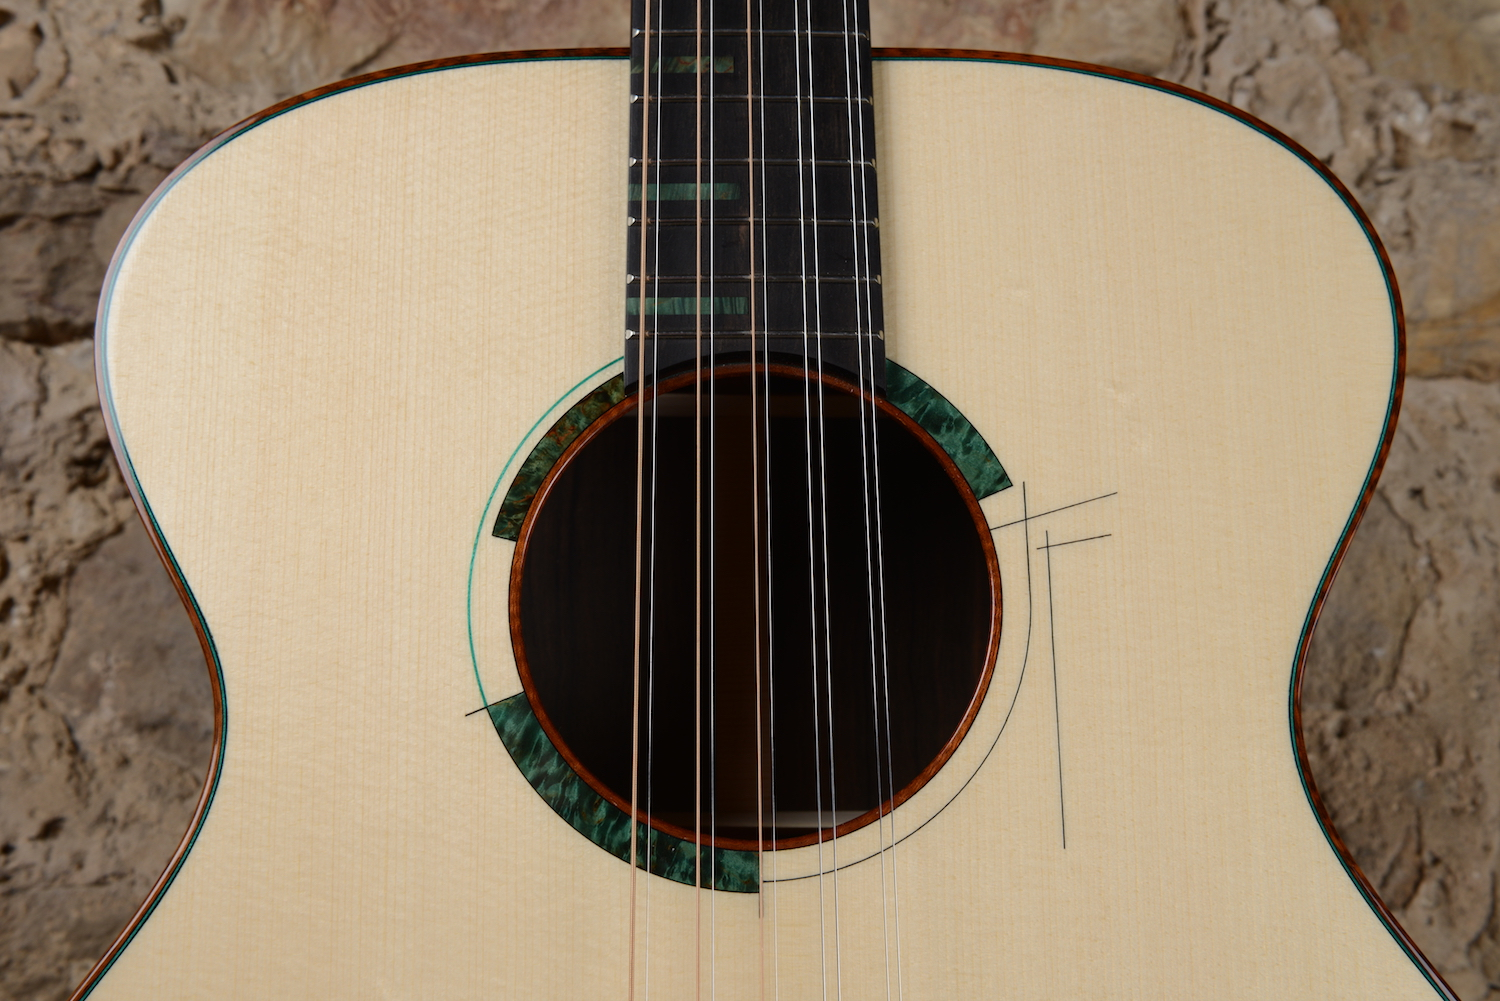 10 string? - John Taylors project was epic!